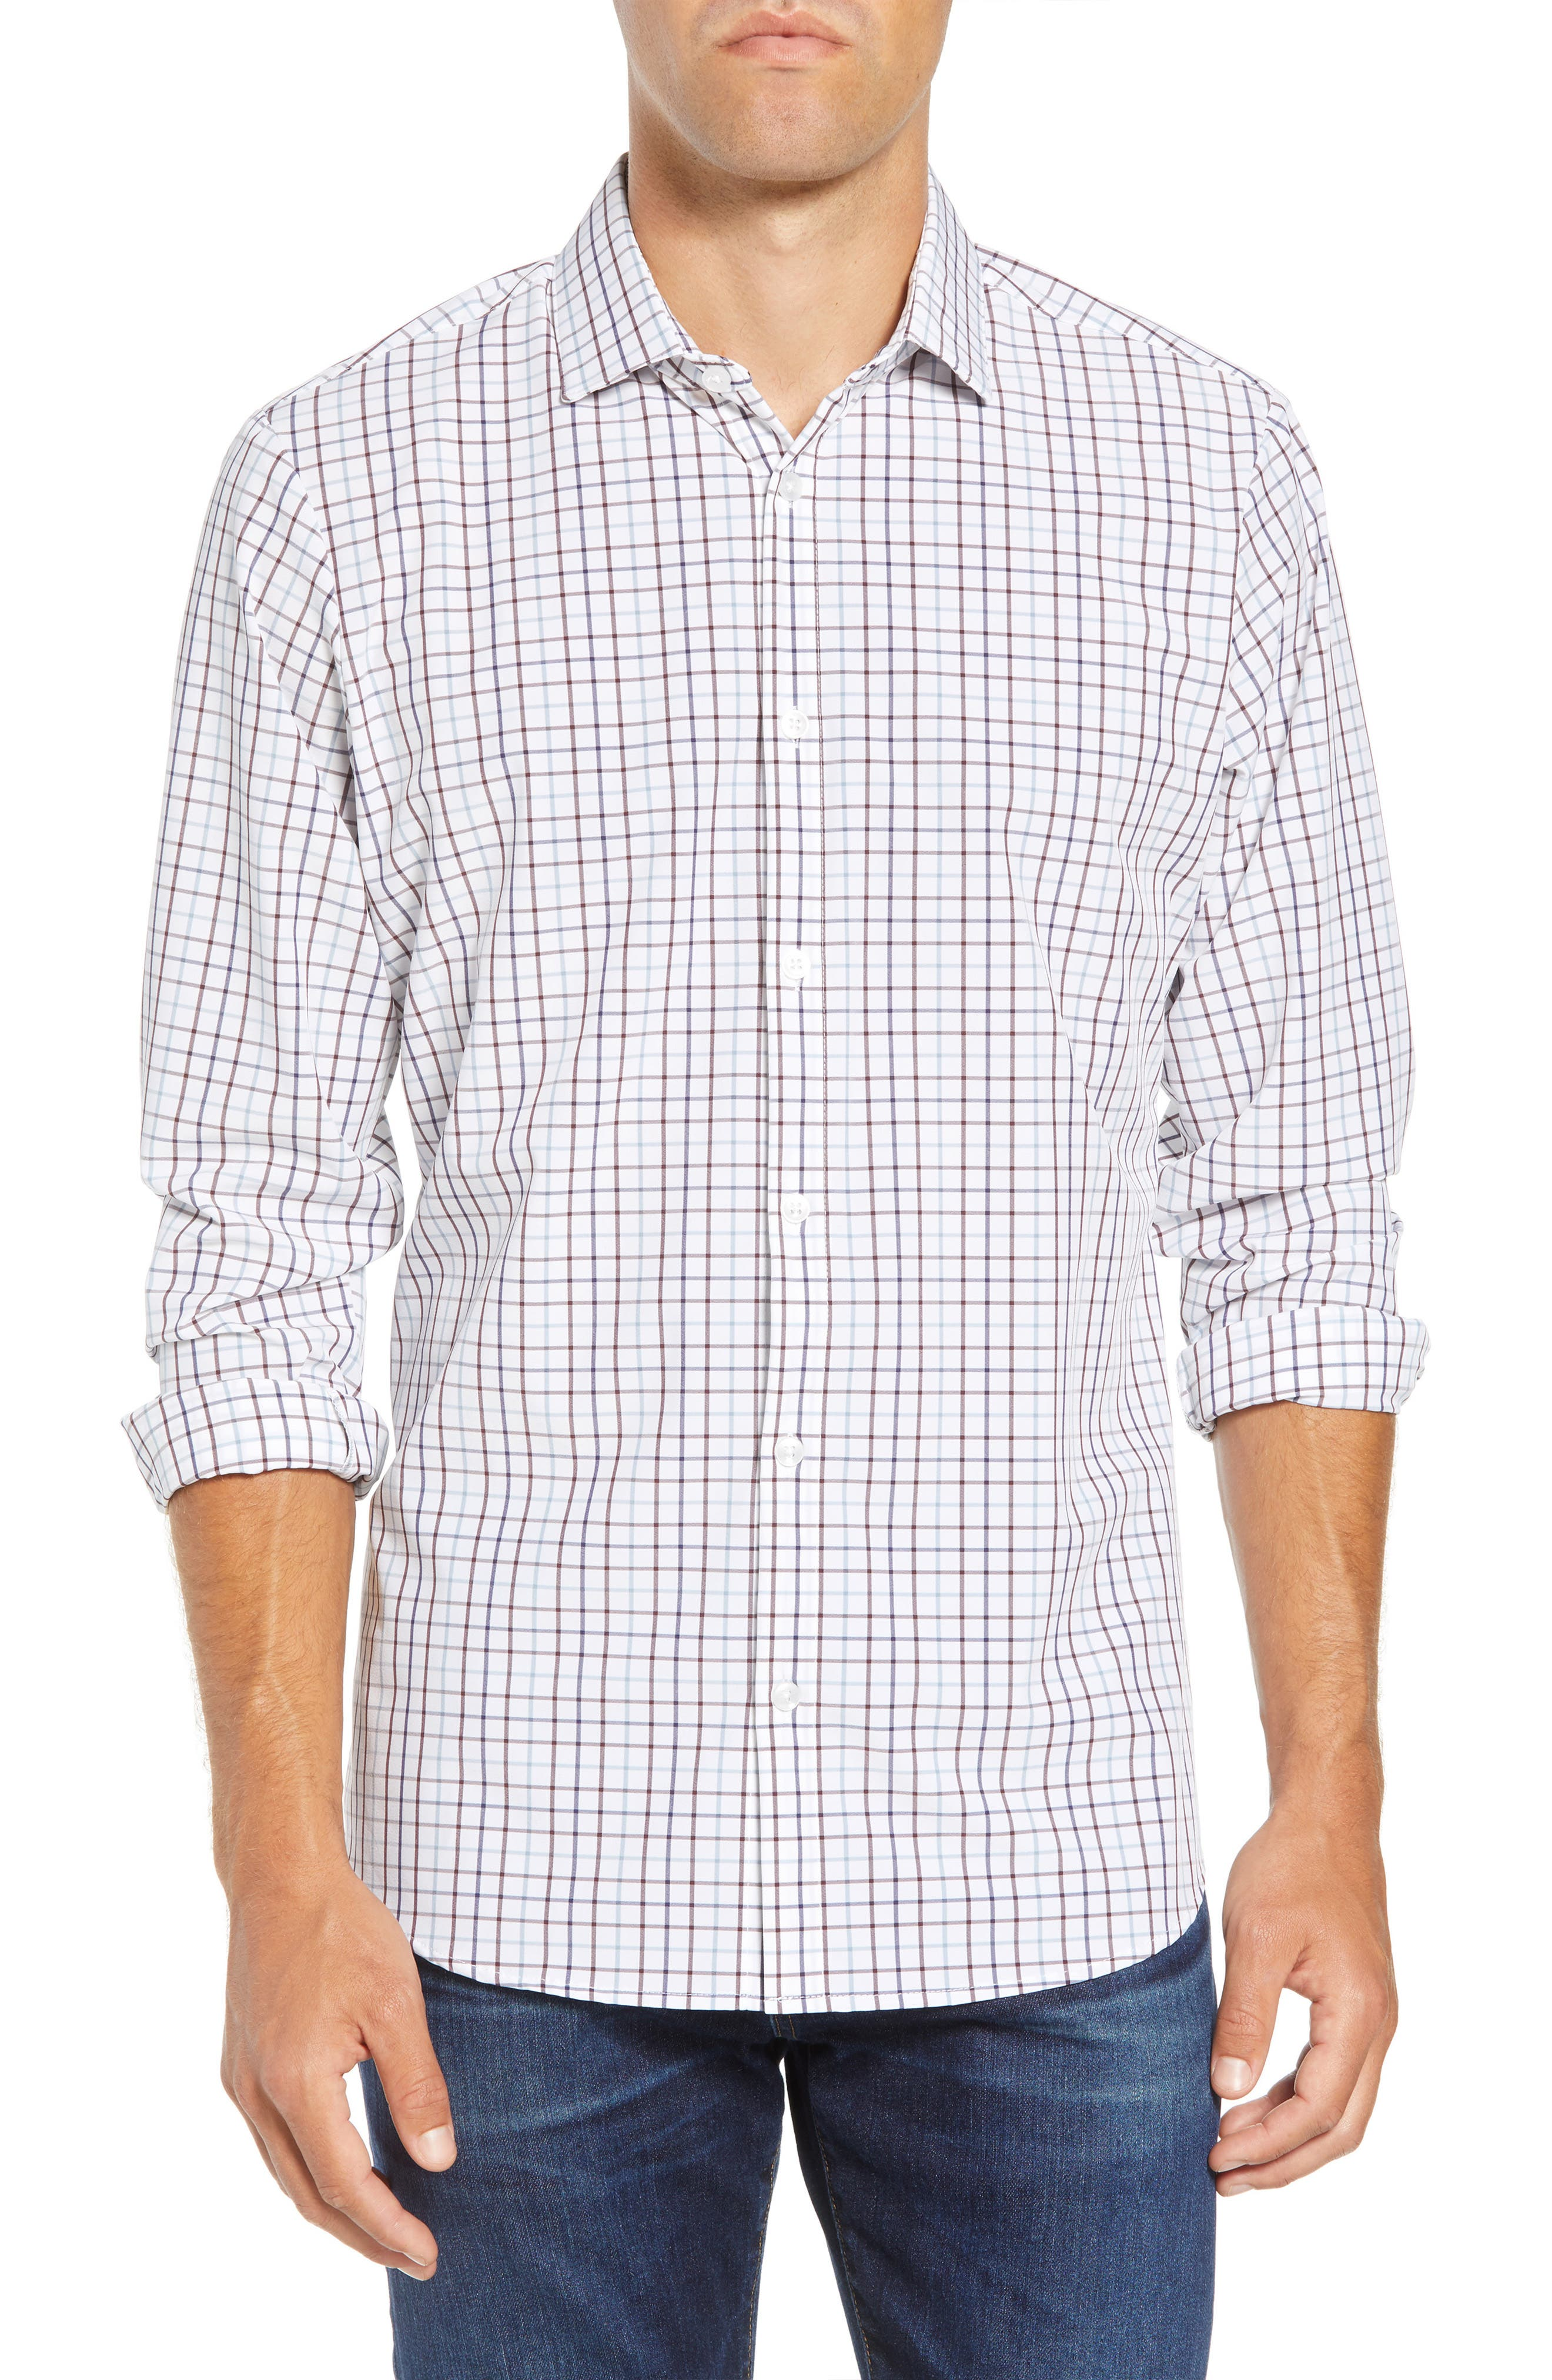 Ward Regular Fit Multi Check Performance Sport Shirt,                         Main,                         color, WHITE